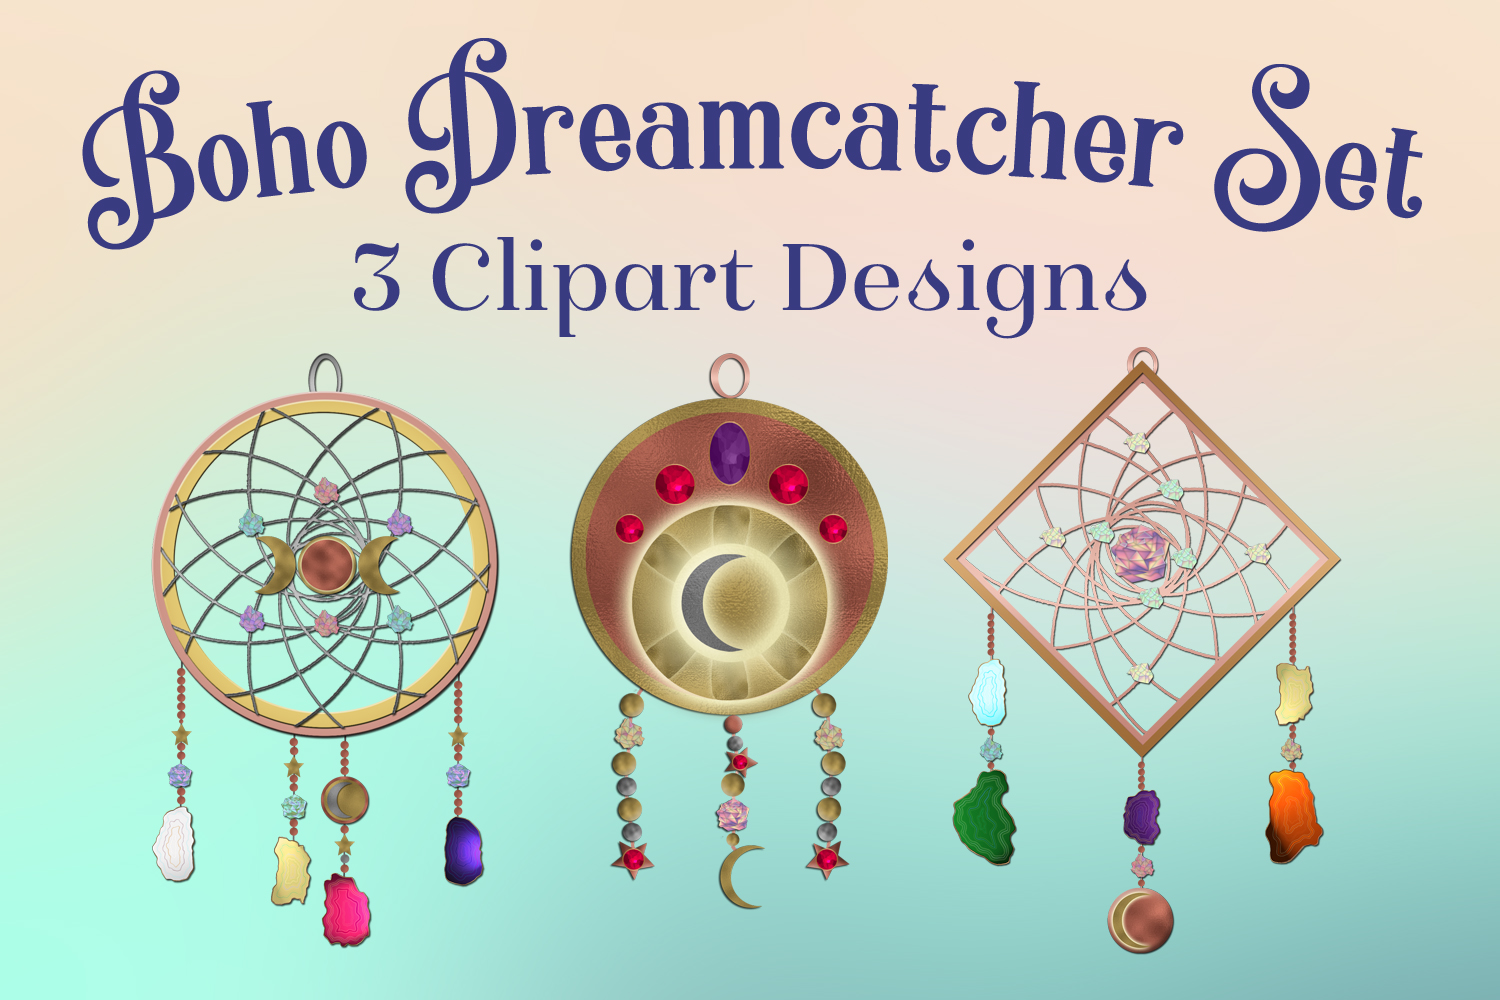 Download Free Boho Dreamcatcher Clipart 3 Clipart Designs Graphic By for Cricut Explore, Silhouette and other cutting machines.